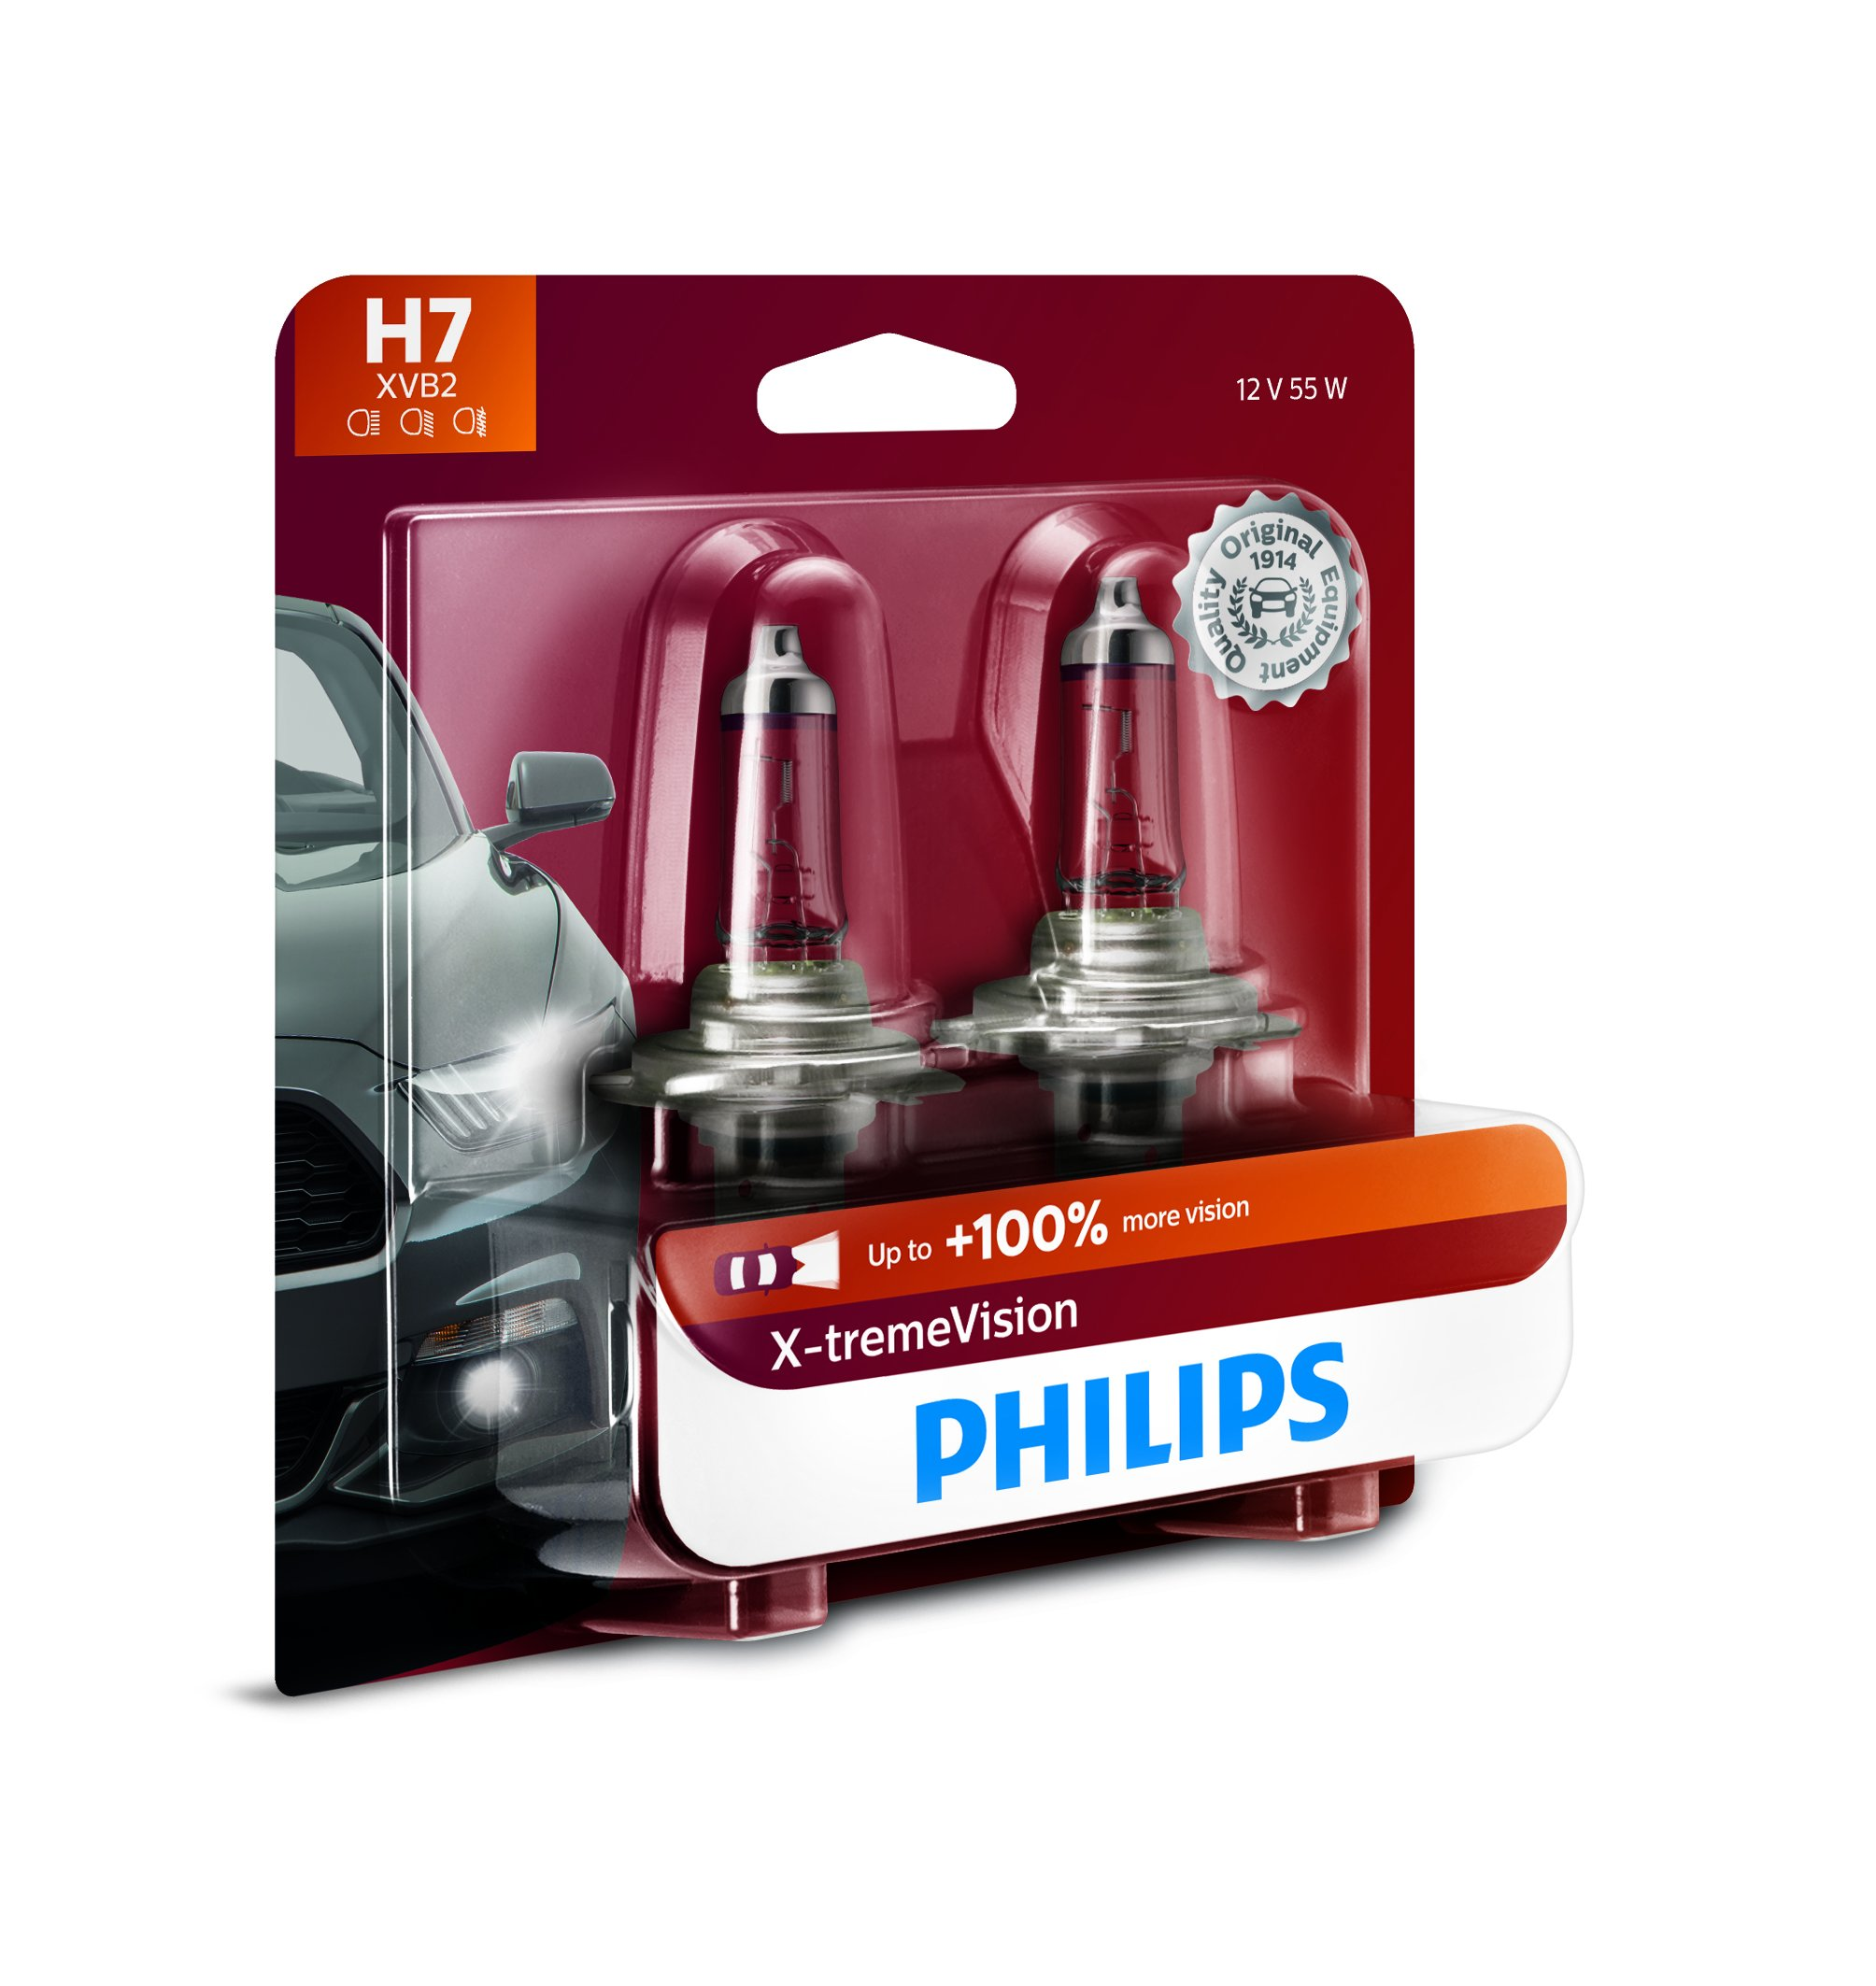 Philips H7 X-tremeVision Upgrade Headlight Bulb with up to 100% More Vision, 2 Pack by PHILIPS